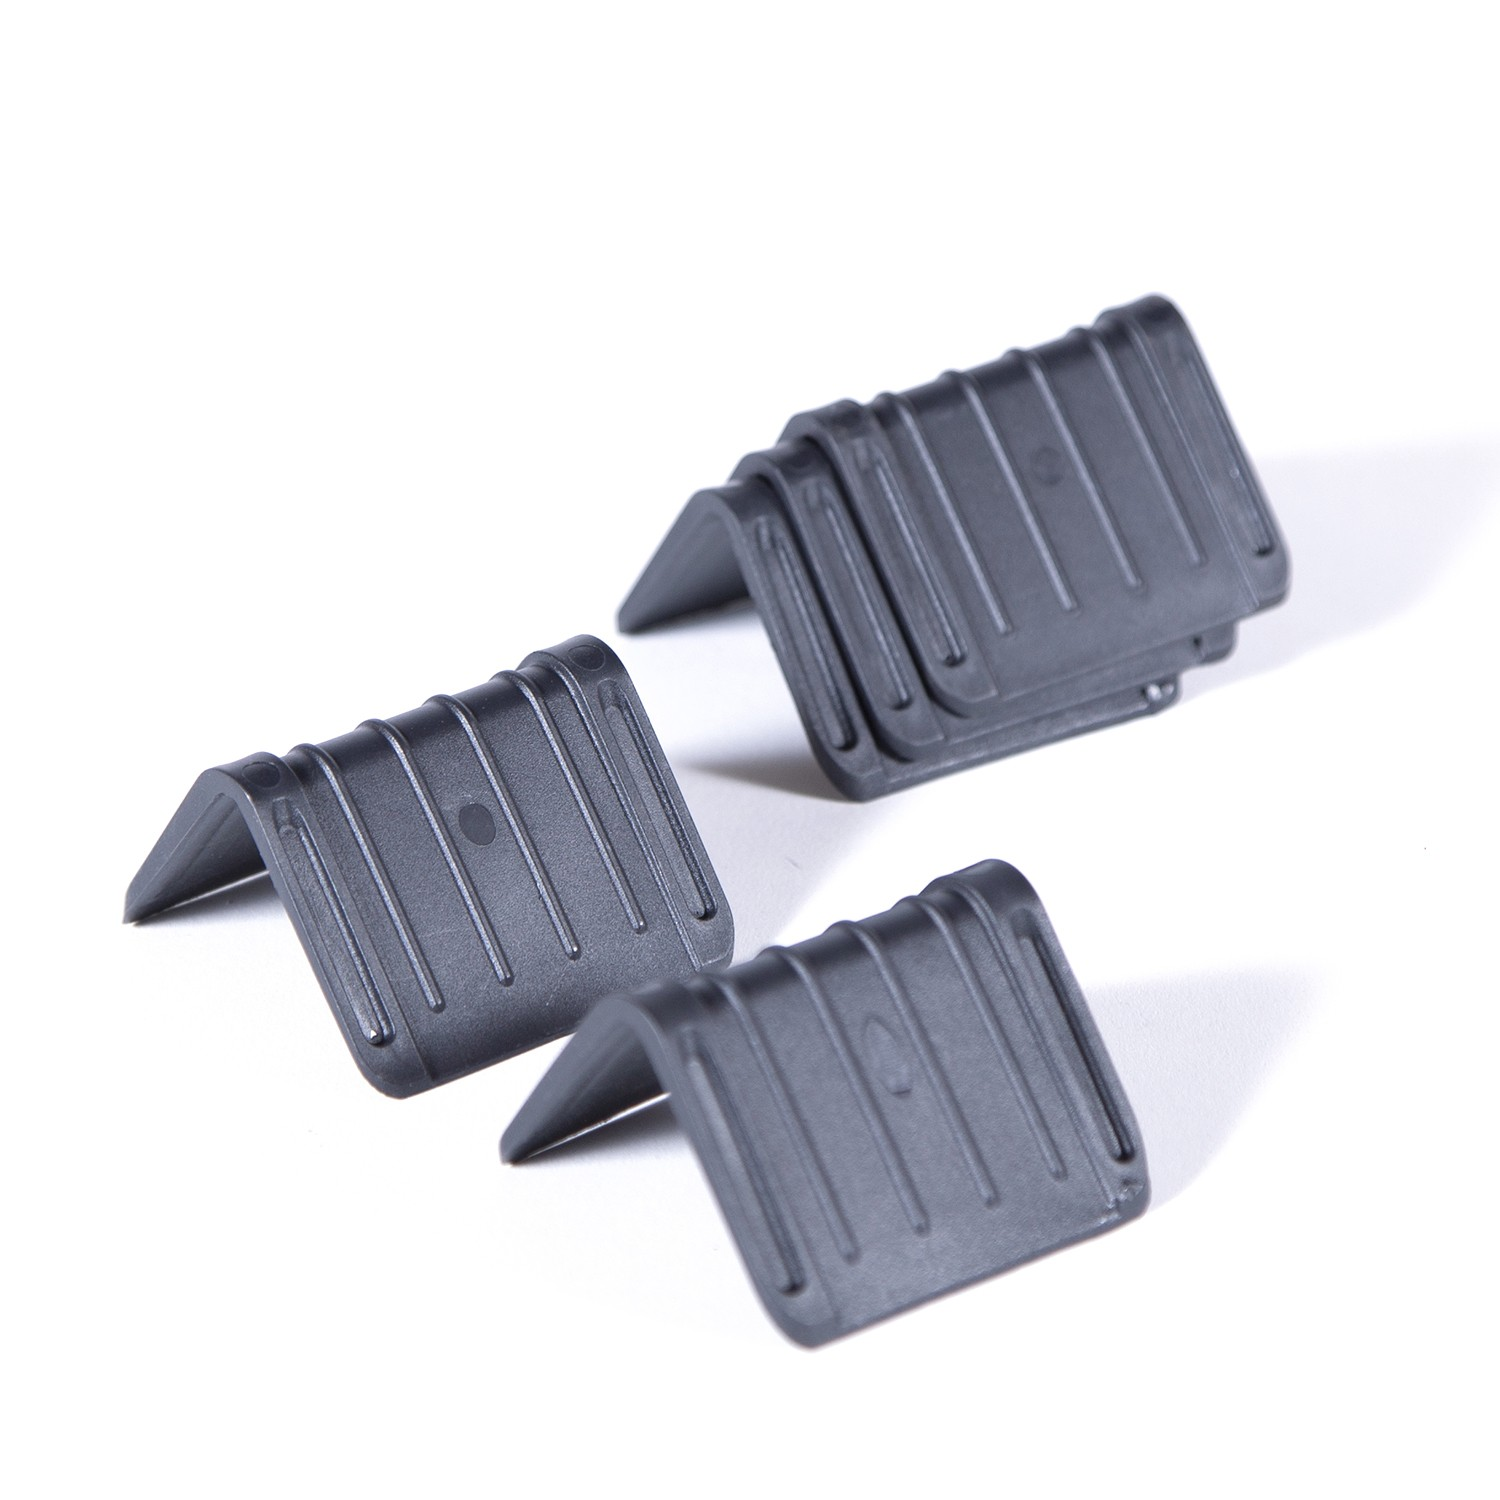 "2 x 2 x 3"" - Black Plastic Strap Guards ""Plastic Corner Protectors"" 1000 Units"